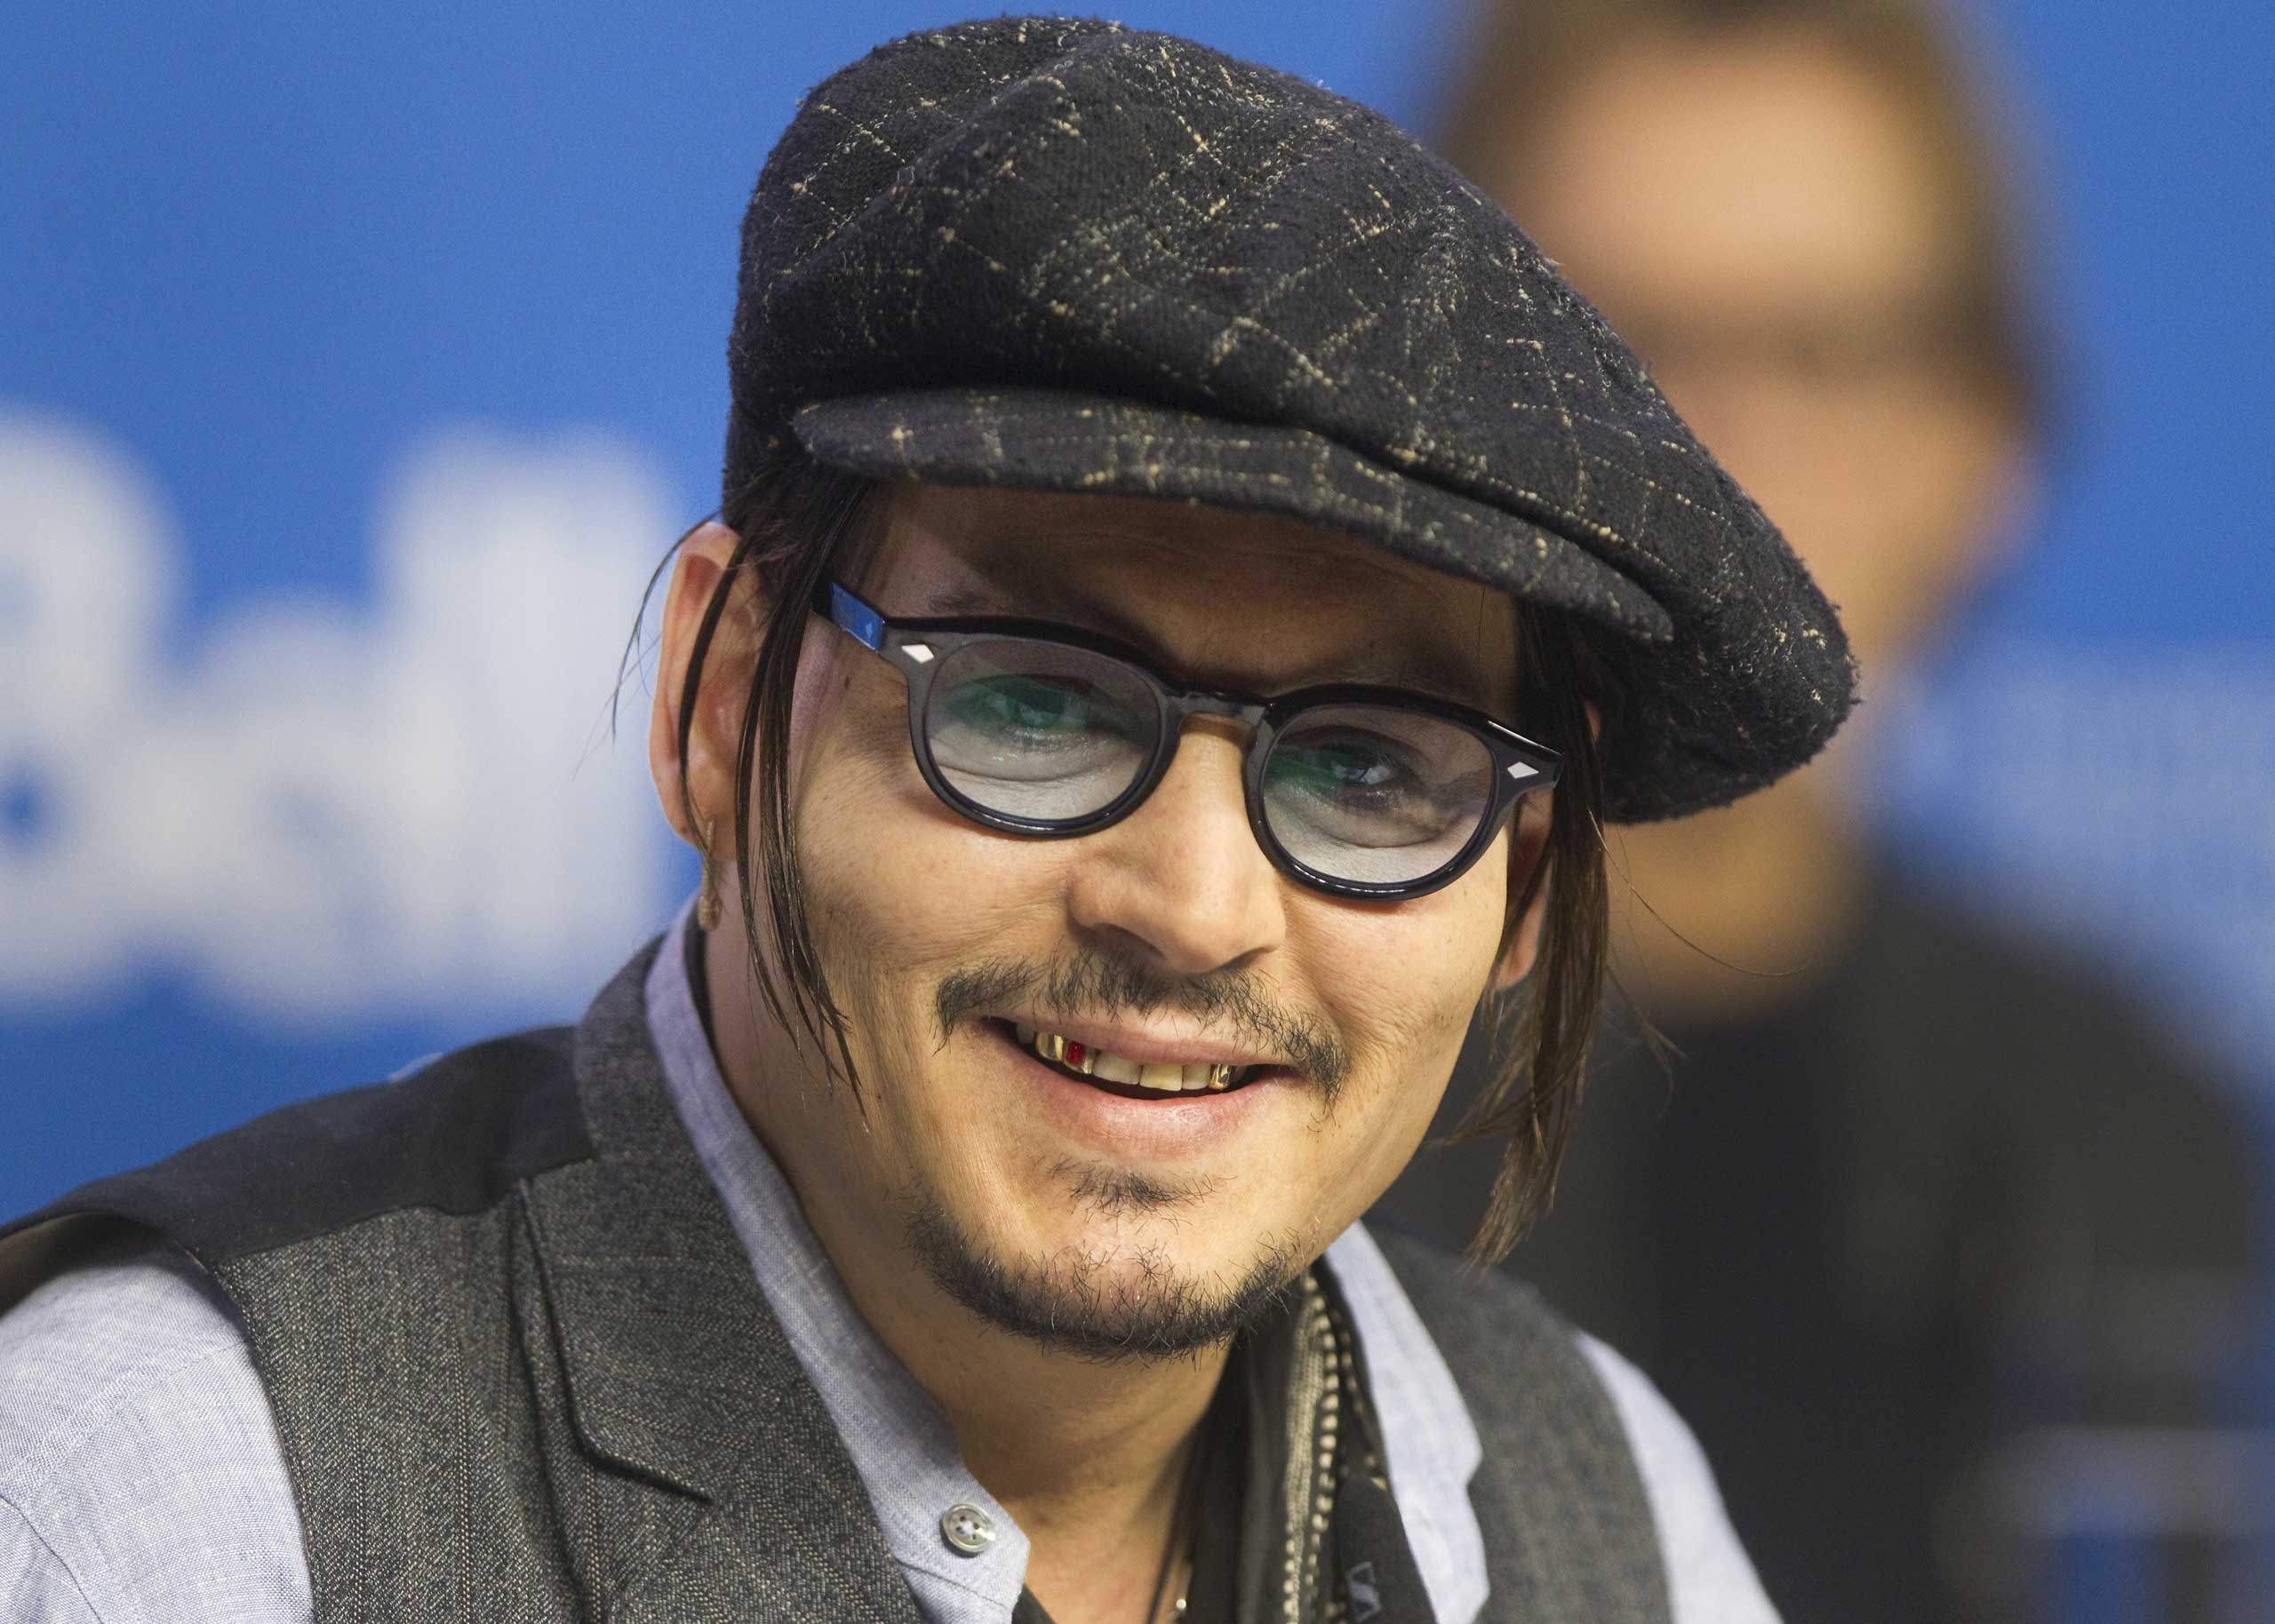 Johnny Depp attends a news conference to promote the film  Black Mass  at TIFF the Toronto International Film Festival in Toronto, Sept. 14, 2015.